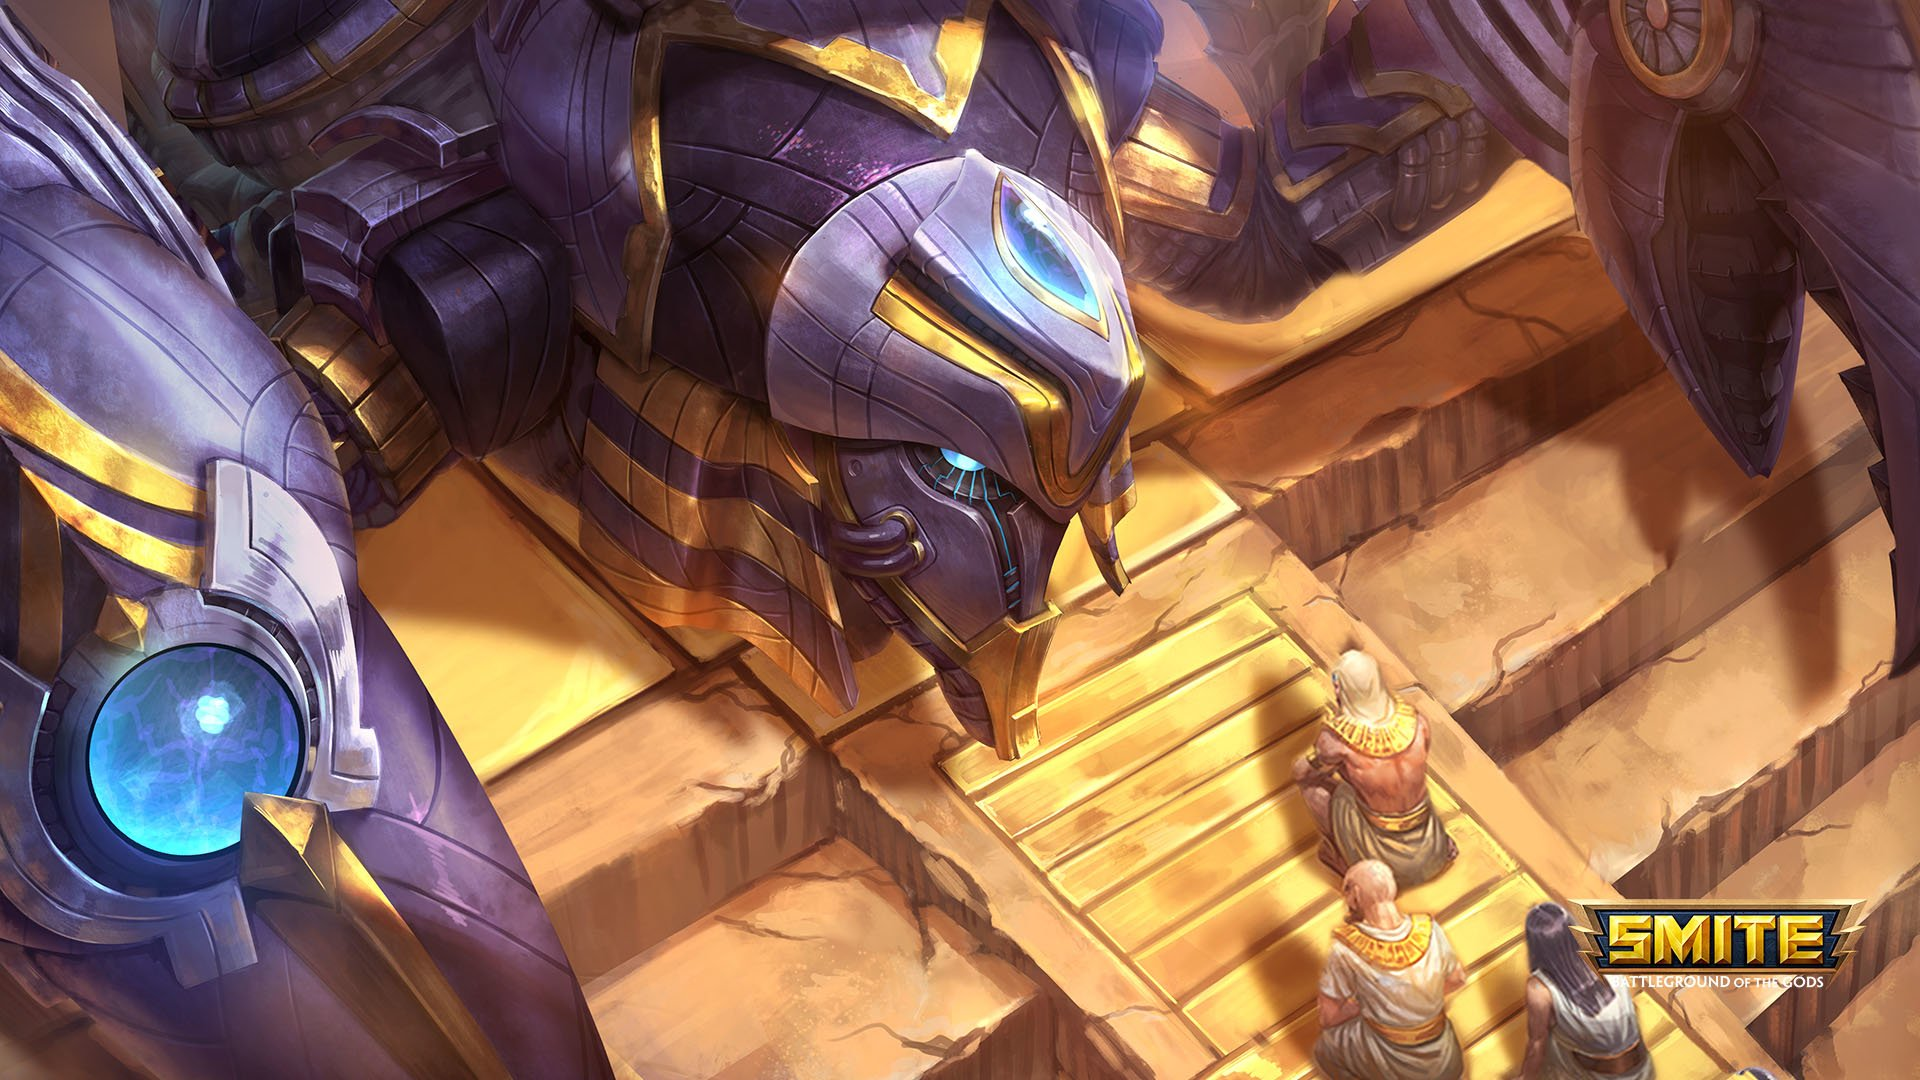 HD Wallpaper | Background Image ID:814567. 1920x1080 Video Game Smite